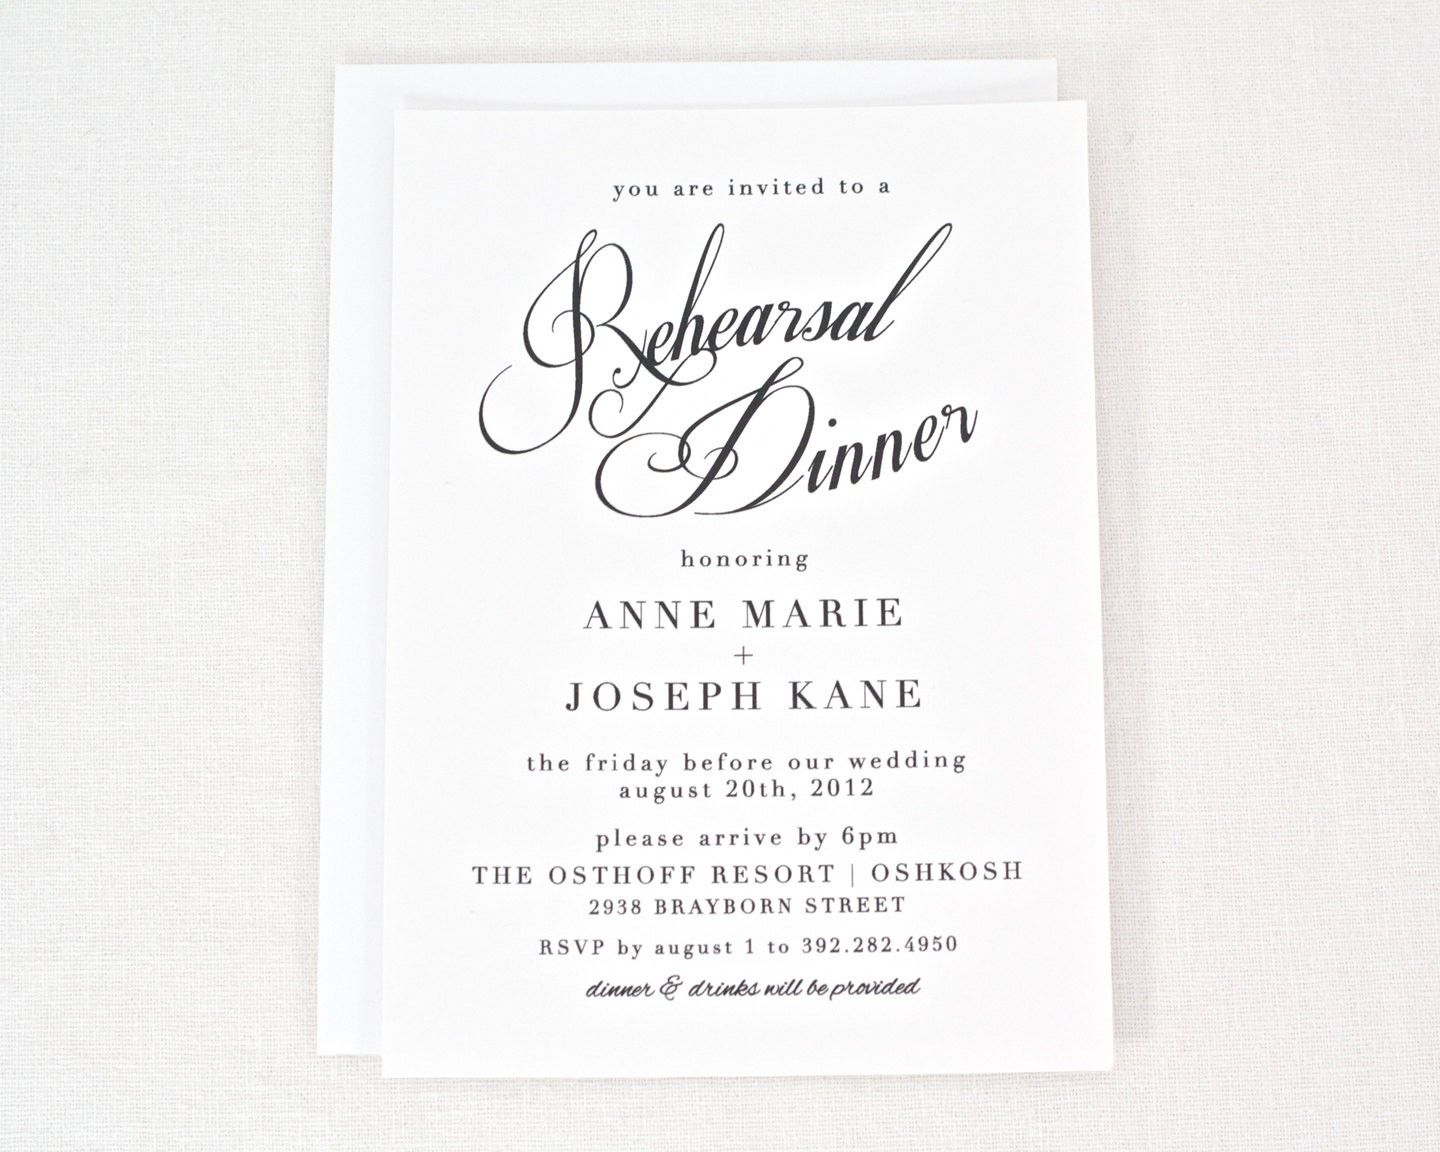 Free Rehearsal Dinner Invitation Templates Printable  Free Dinner Invitation Templates Printable